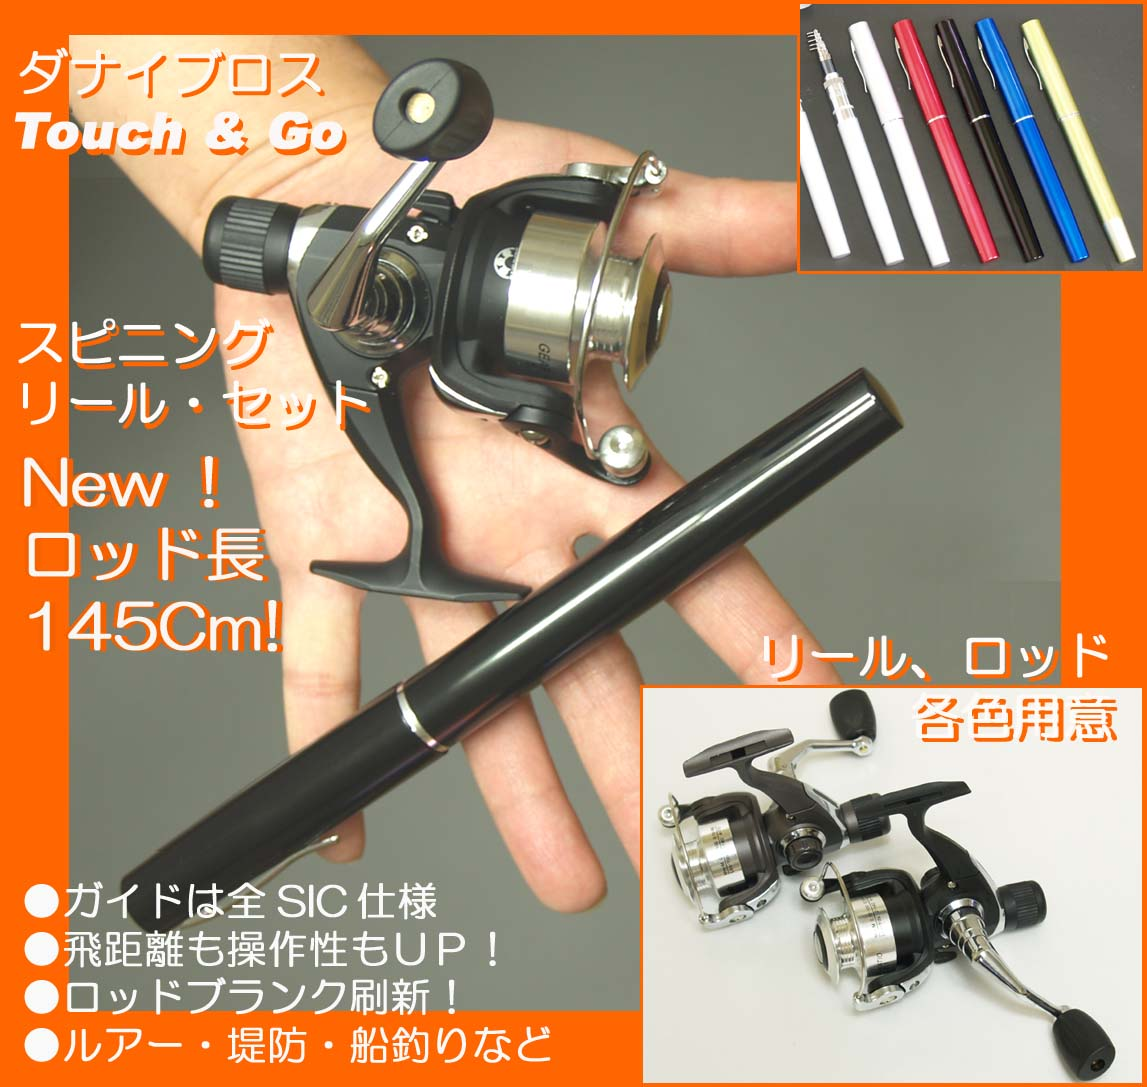 New! ダナイブロス spinning reel set